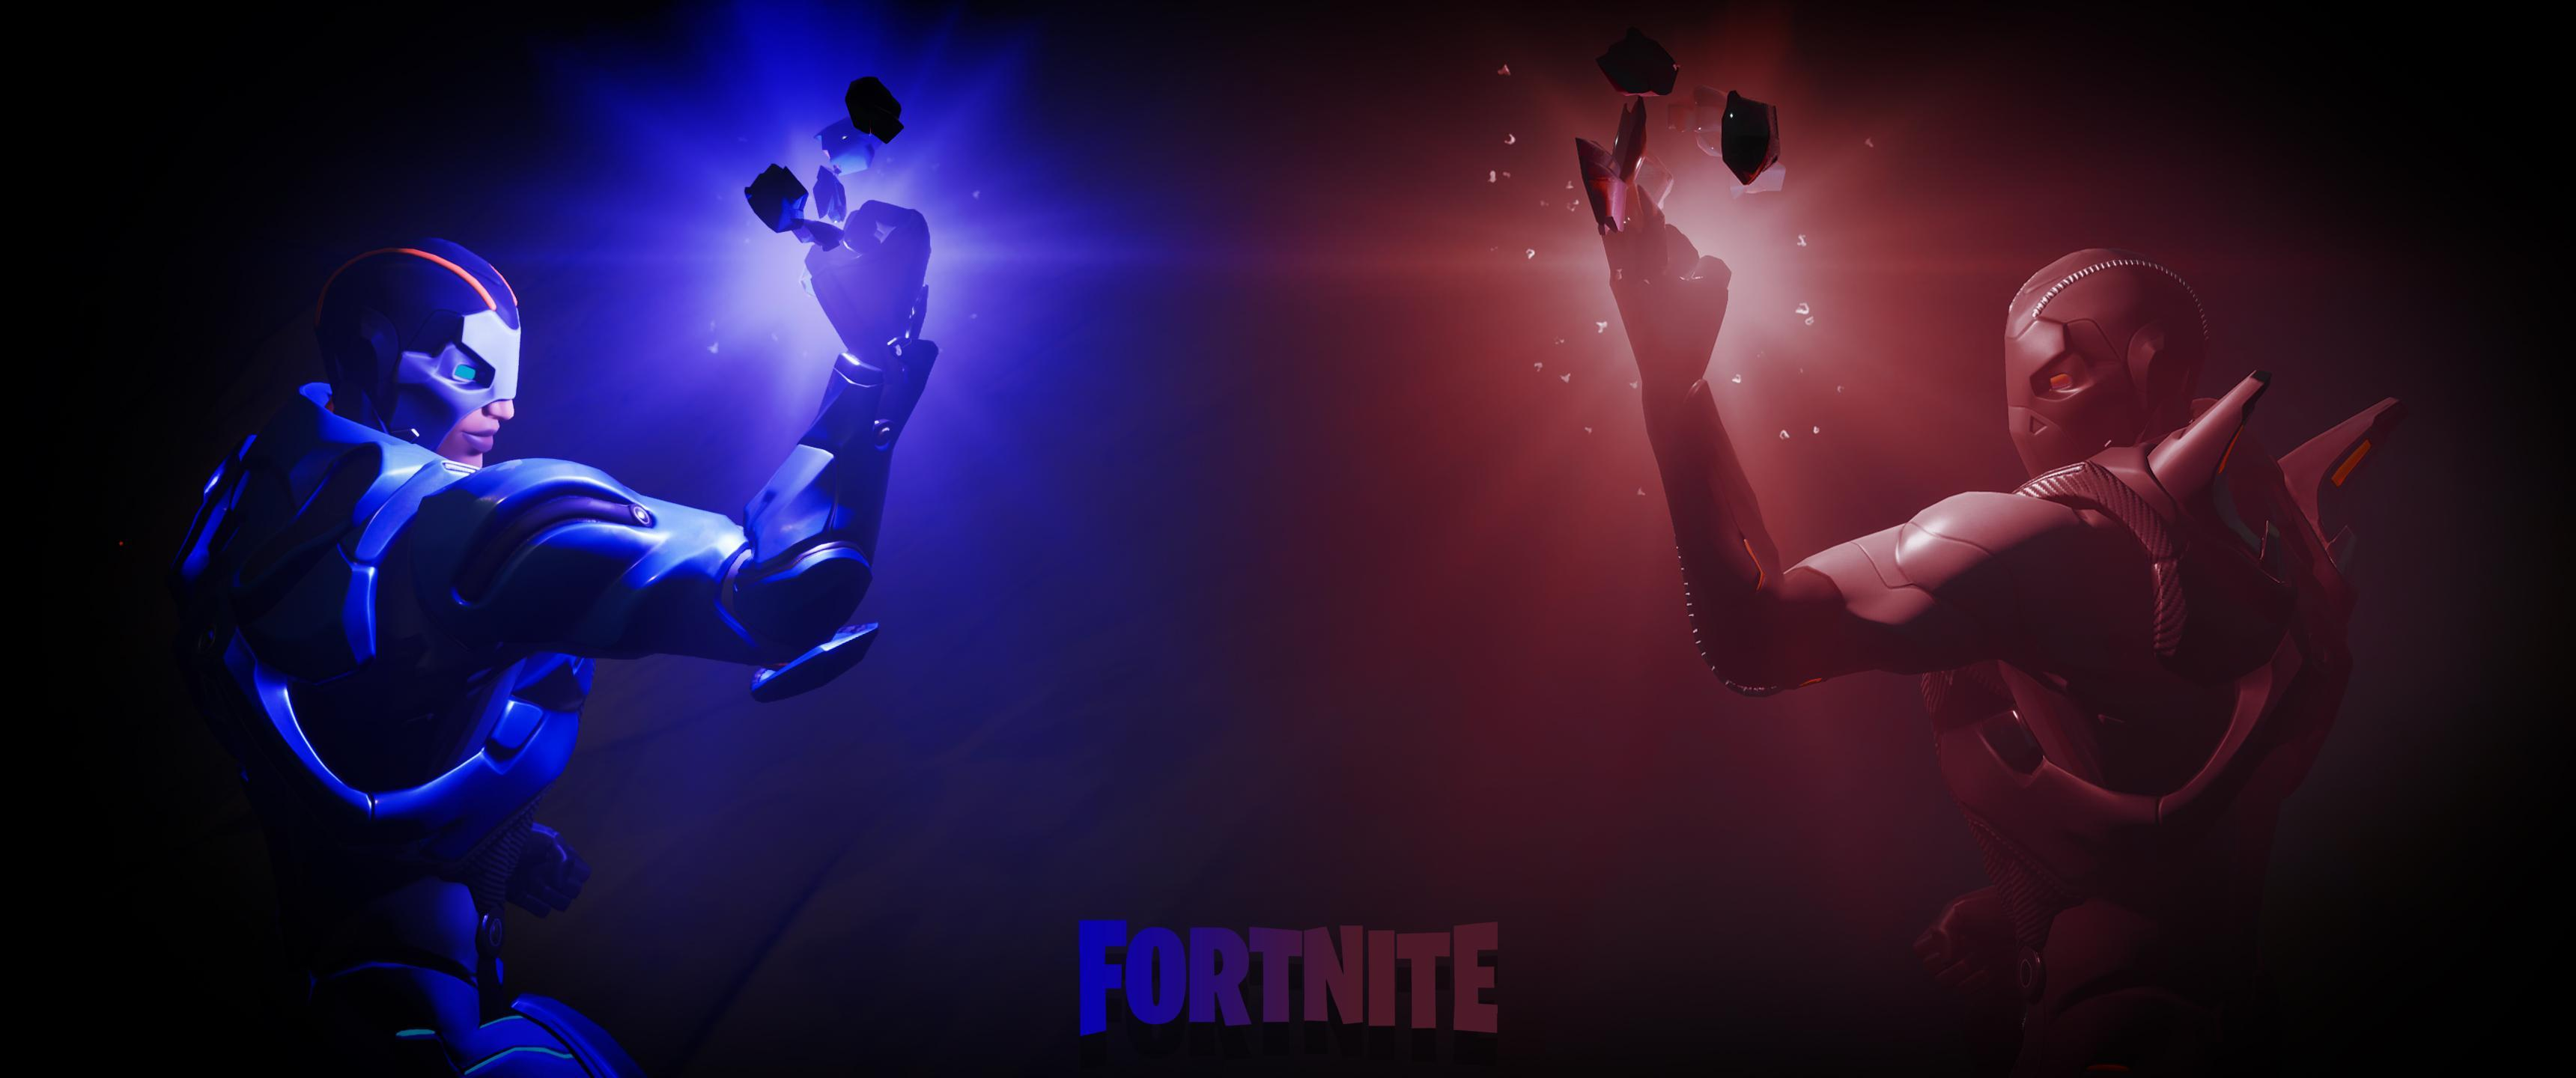 Fortnite Banner Wallpapers Wallpaper Cave